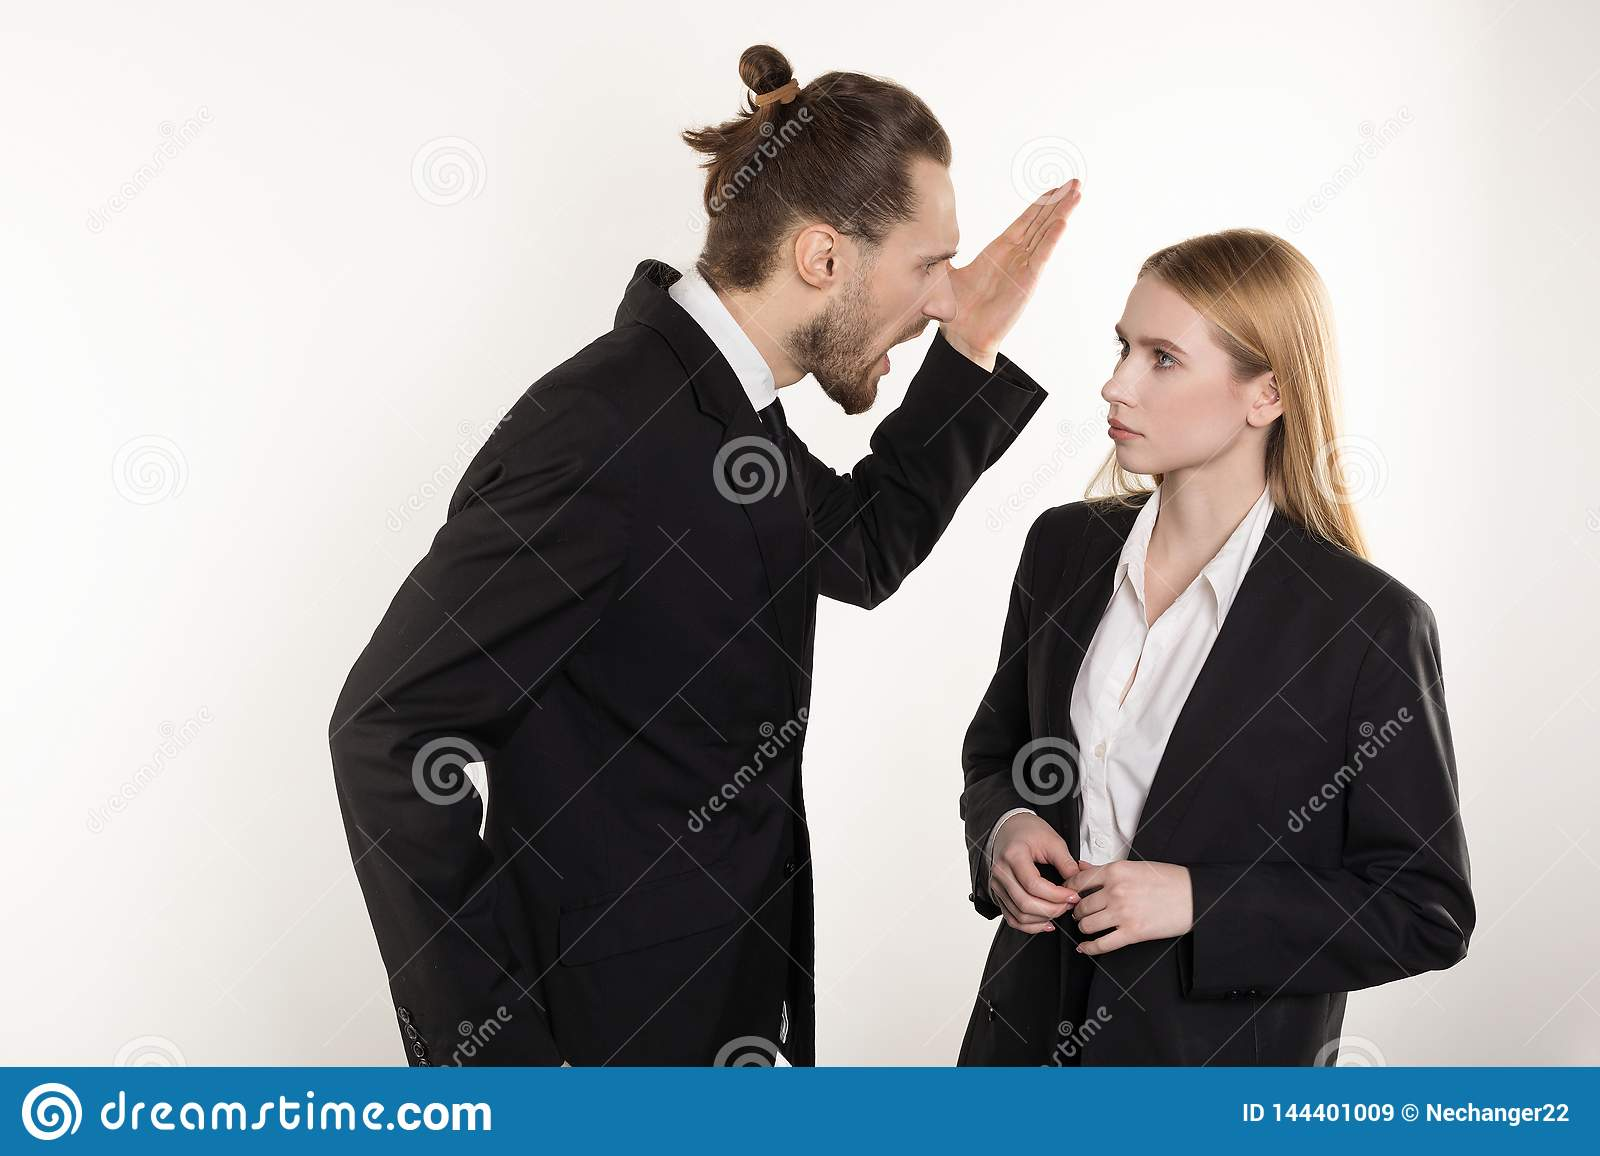 Attractive businessman with beard and trendy hairstyle in black suit screaming at his subordinate who can`t cope the